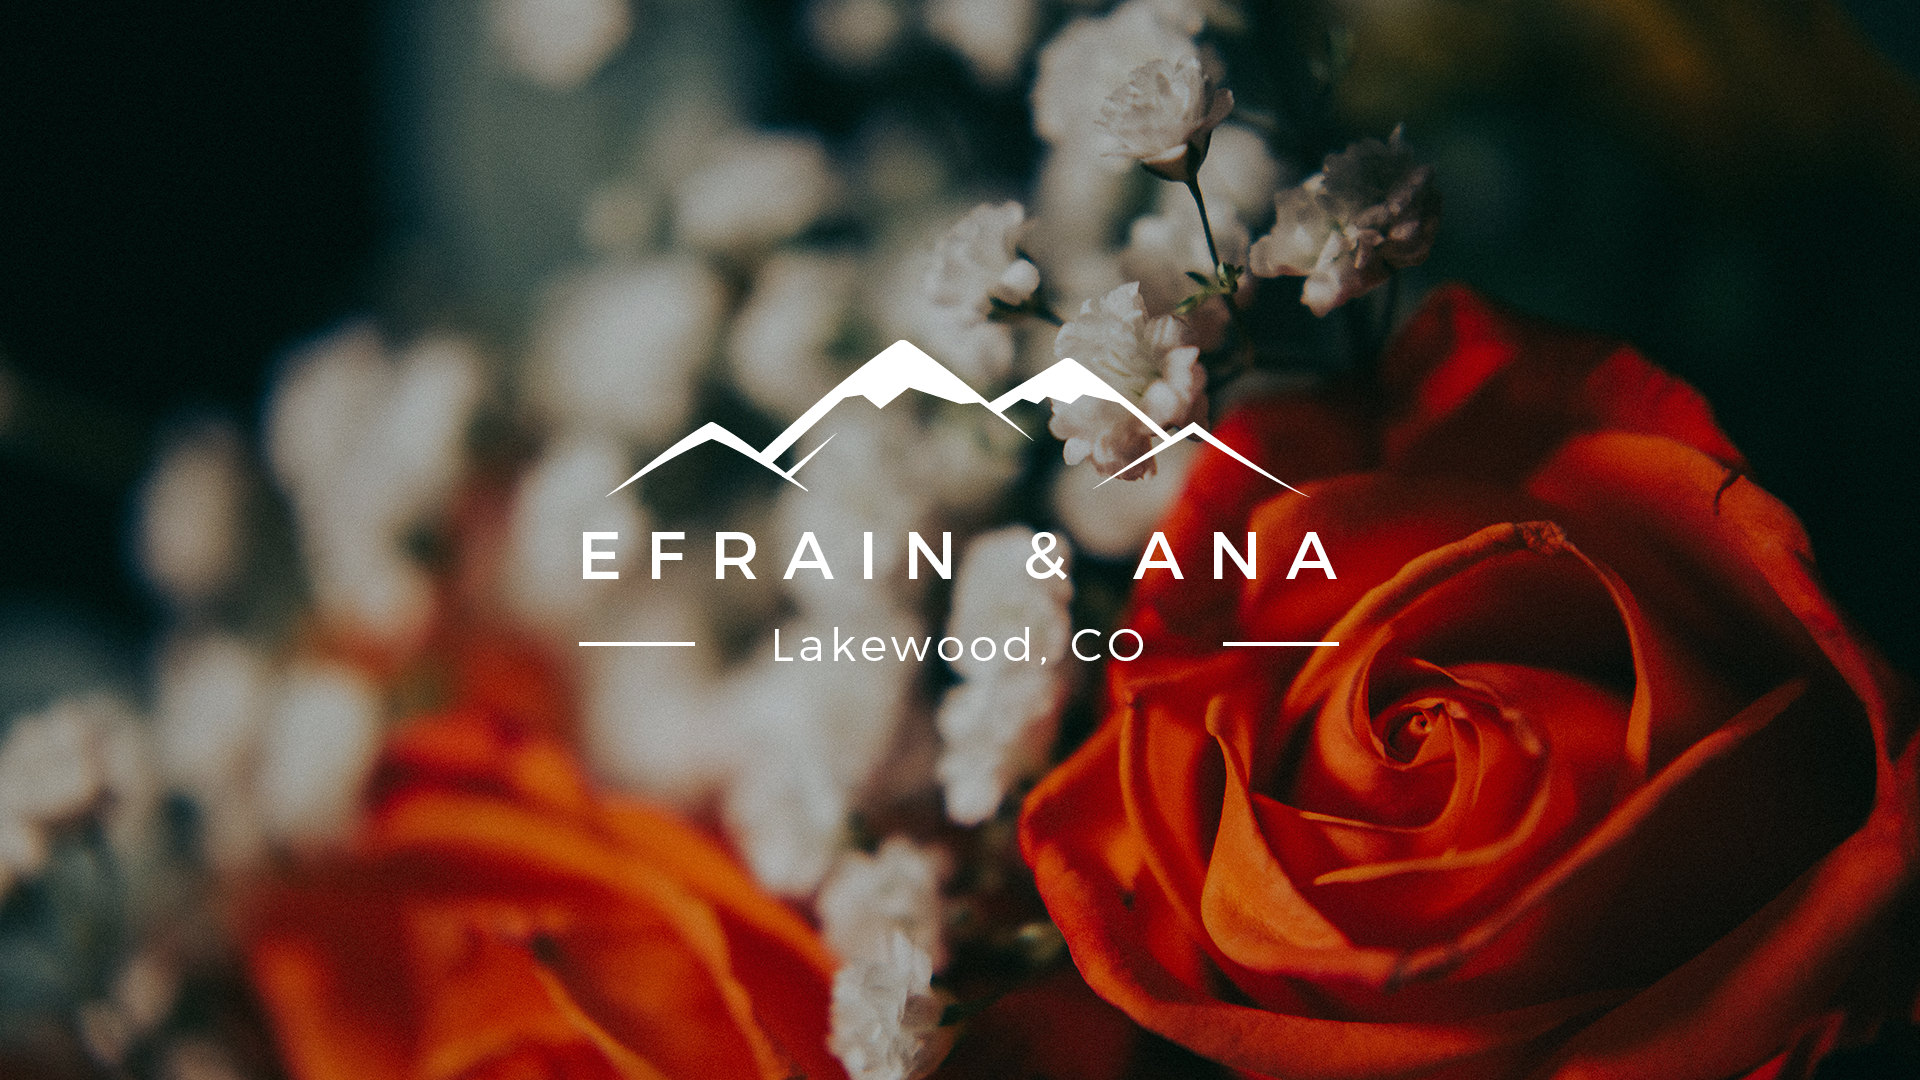 Ana + Efrain | Lakewood, Colorado | Private Home